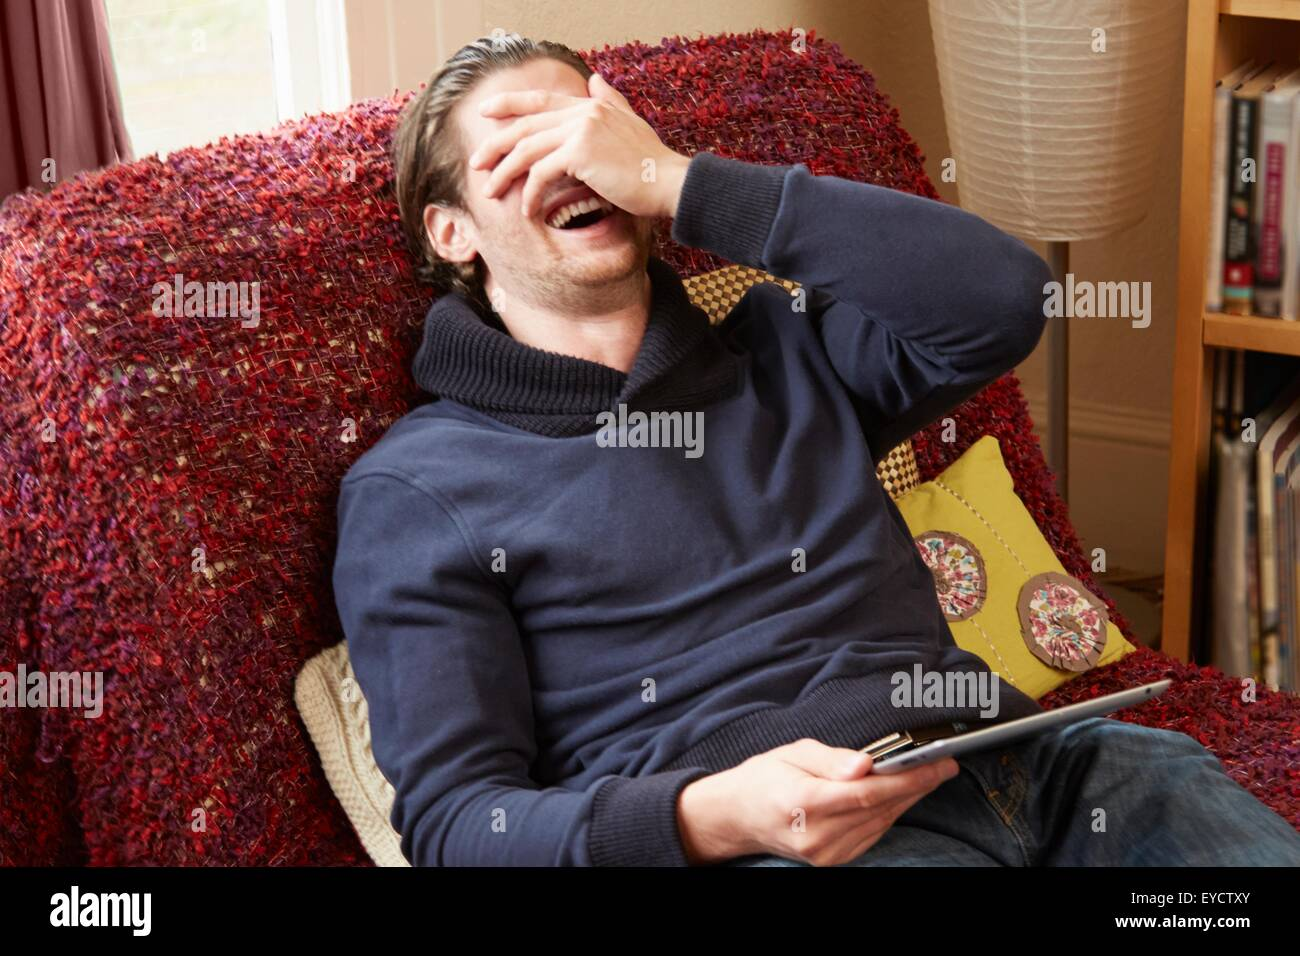 Young man reclining on sofa covering his face whilst laughing - Stock Image